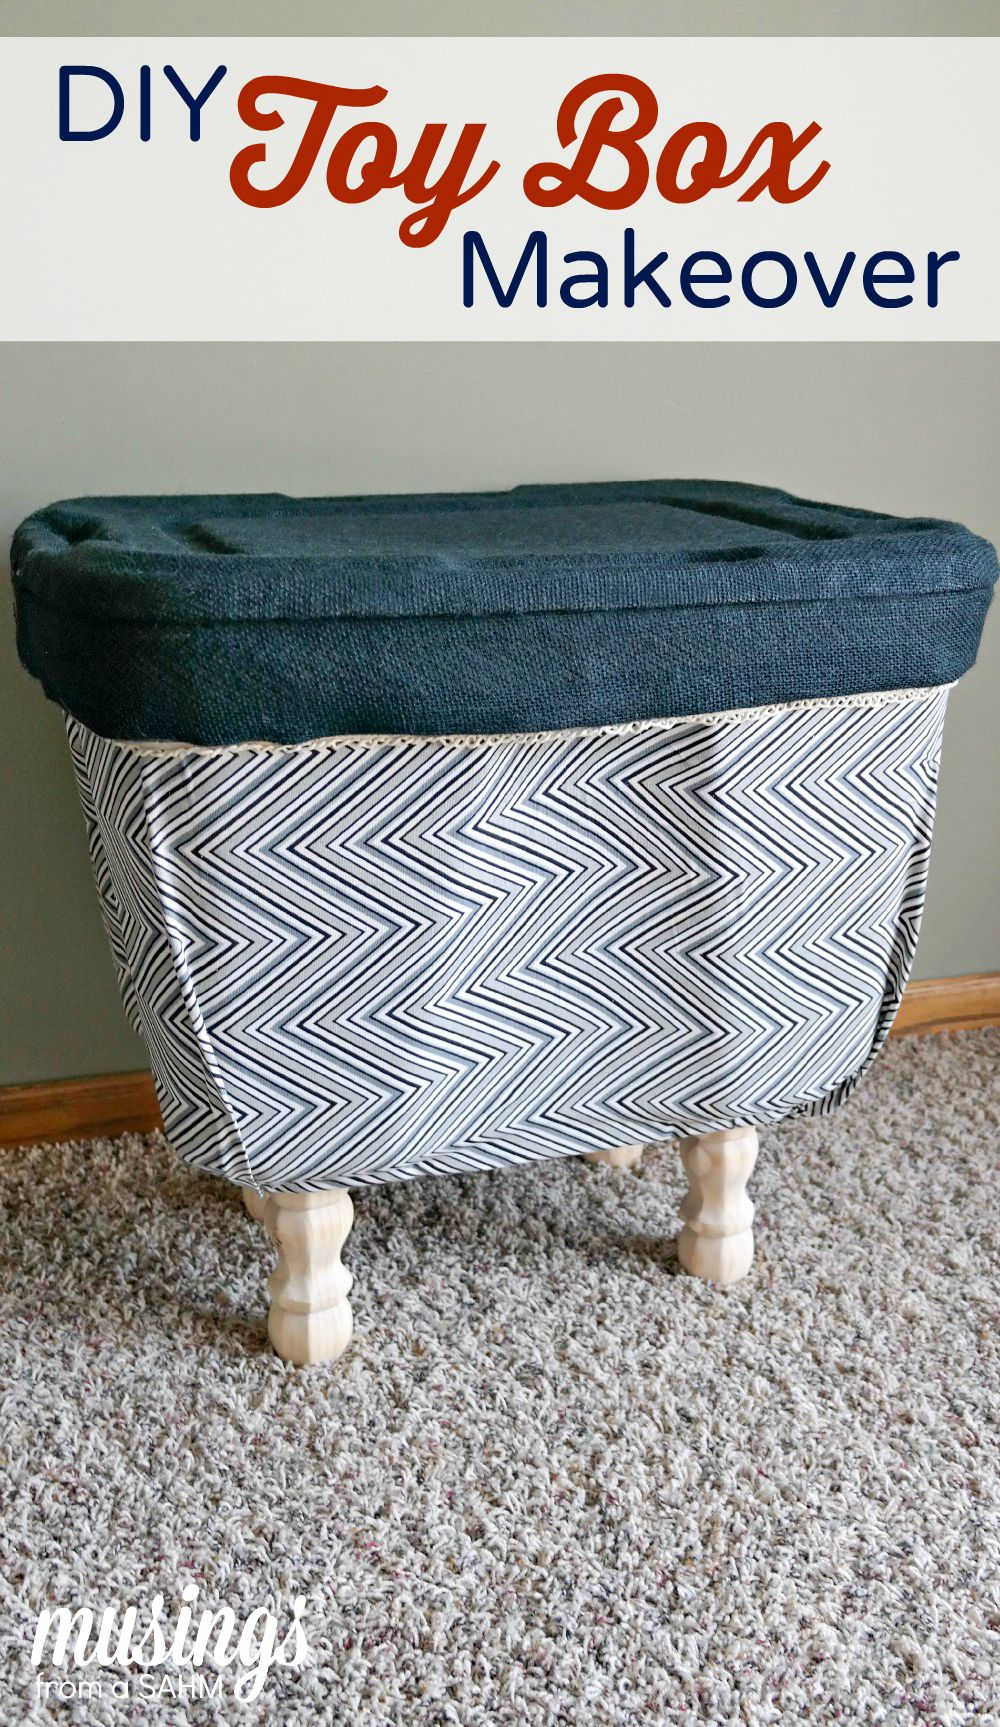 DIY Toy Box Makeover